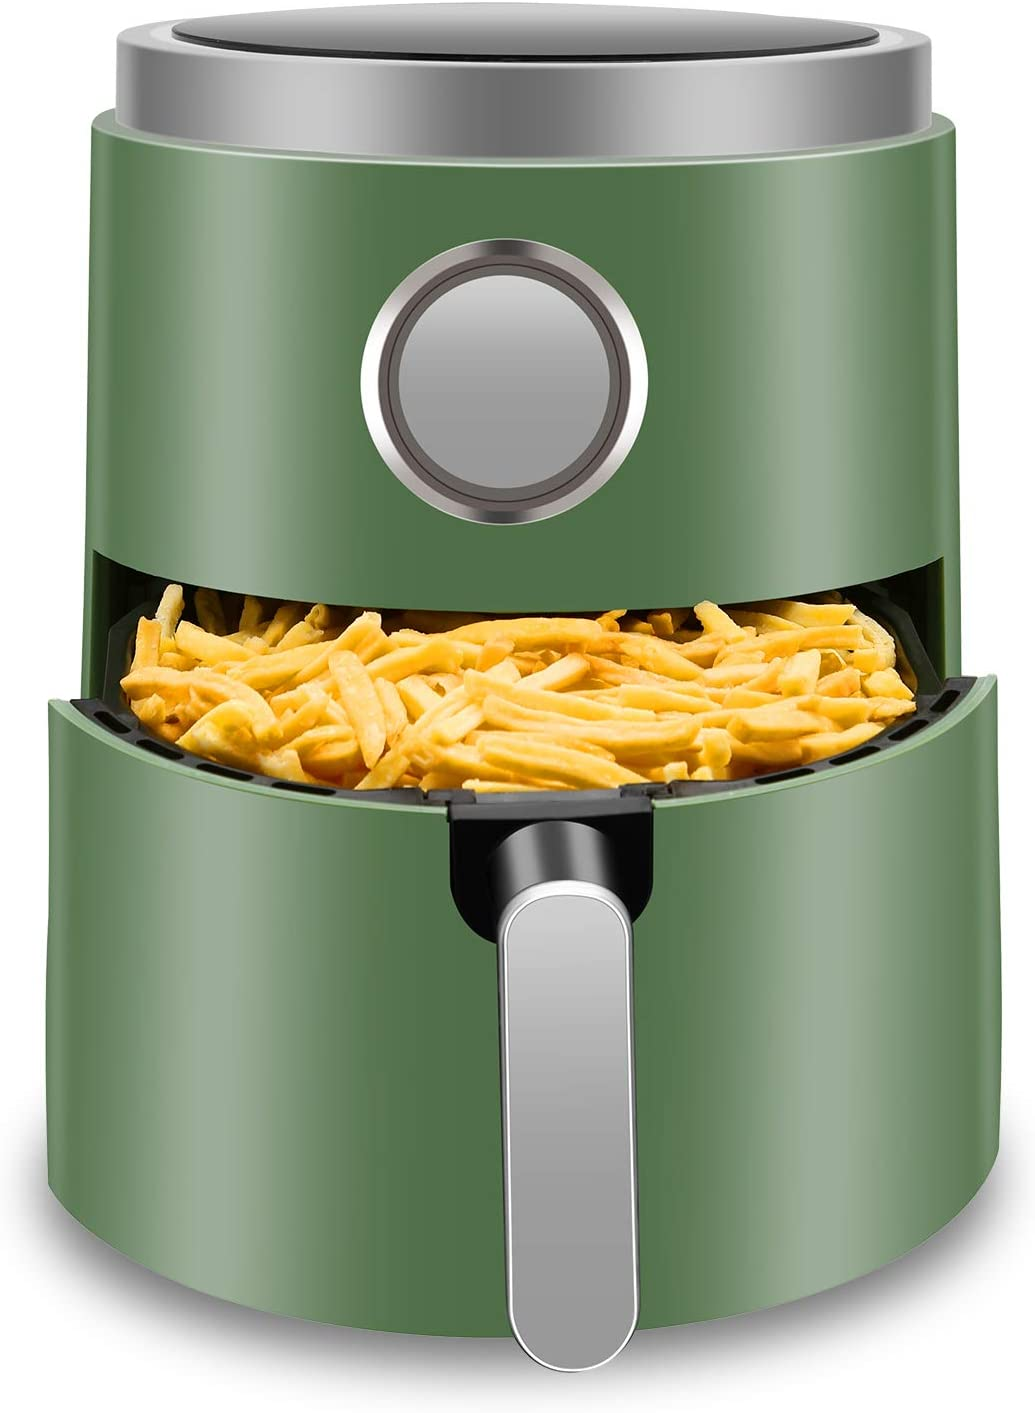 Antarctic Star 5.2 Quart Air Fryer Hot Deep Fryer Free Chip Digital Touch Screen 7 Presets, Auto Shutoff Nonstick Basket with Cookbook Oilless Cooker Roasting/Baking 1400W,GREEN